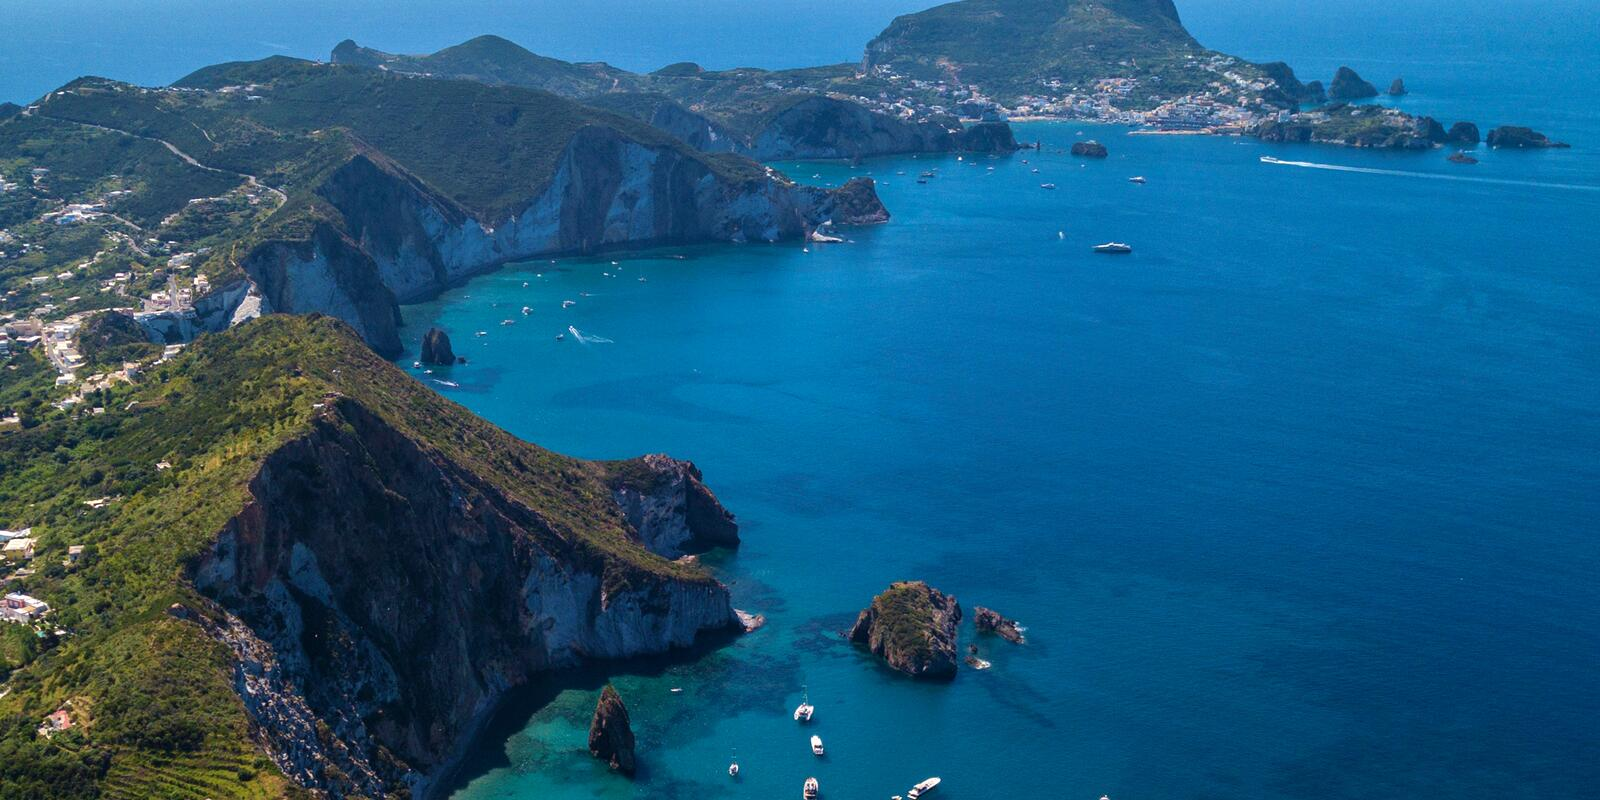 Weekend for a walk between the islands of Ponza and Palmarola